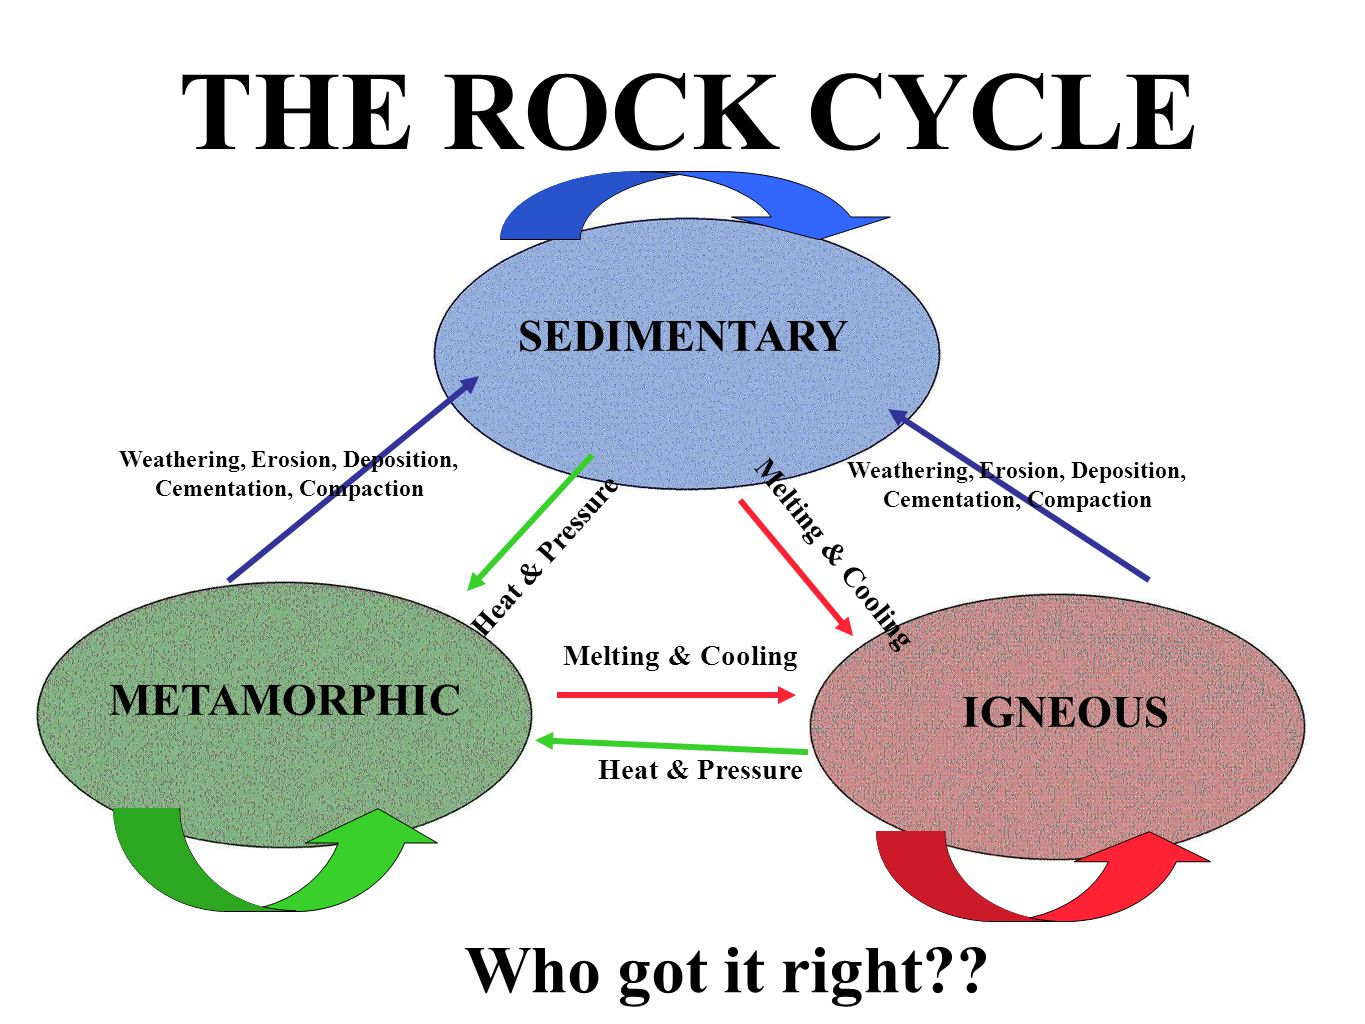 THE ROCK CYCLE Who got it right?? SEDIMENTARY METAMORPHIC Heat & Pressure IGNEOUS Heat & Pressure Weathering, Erosion, Deposition, Cementation, Compac